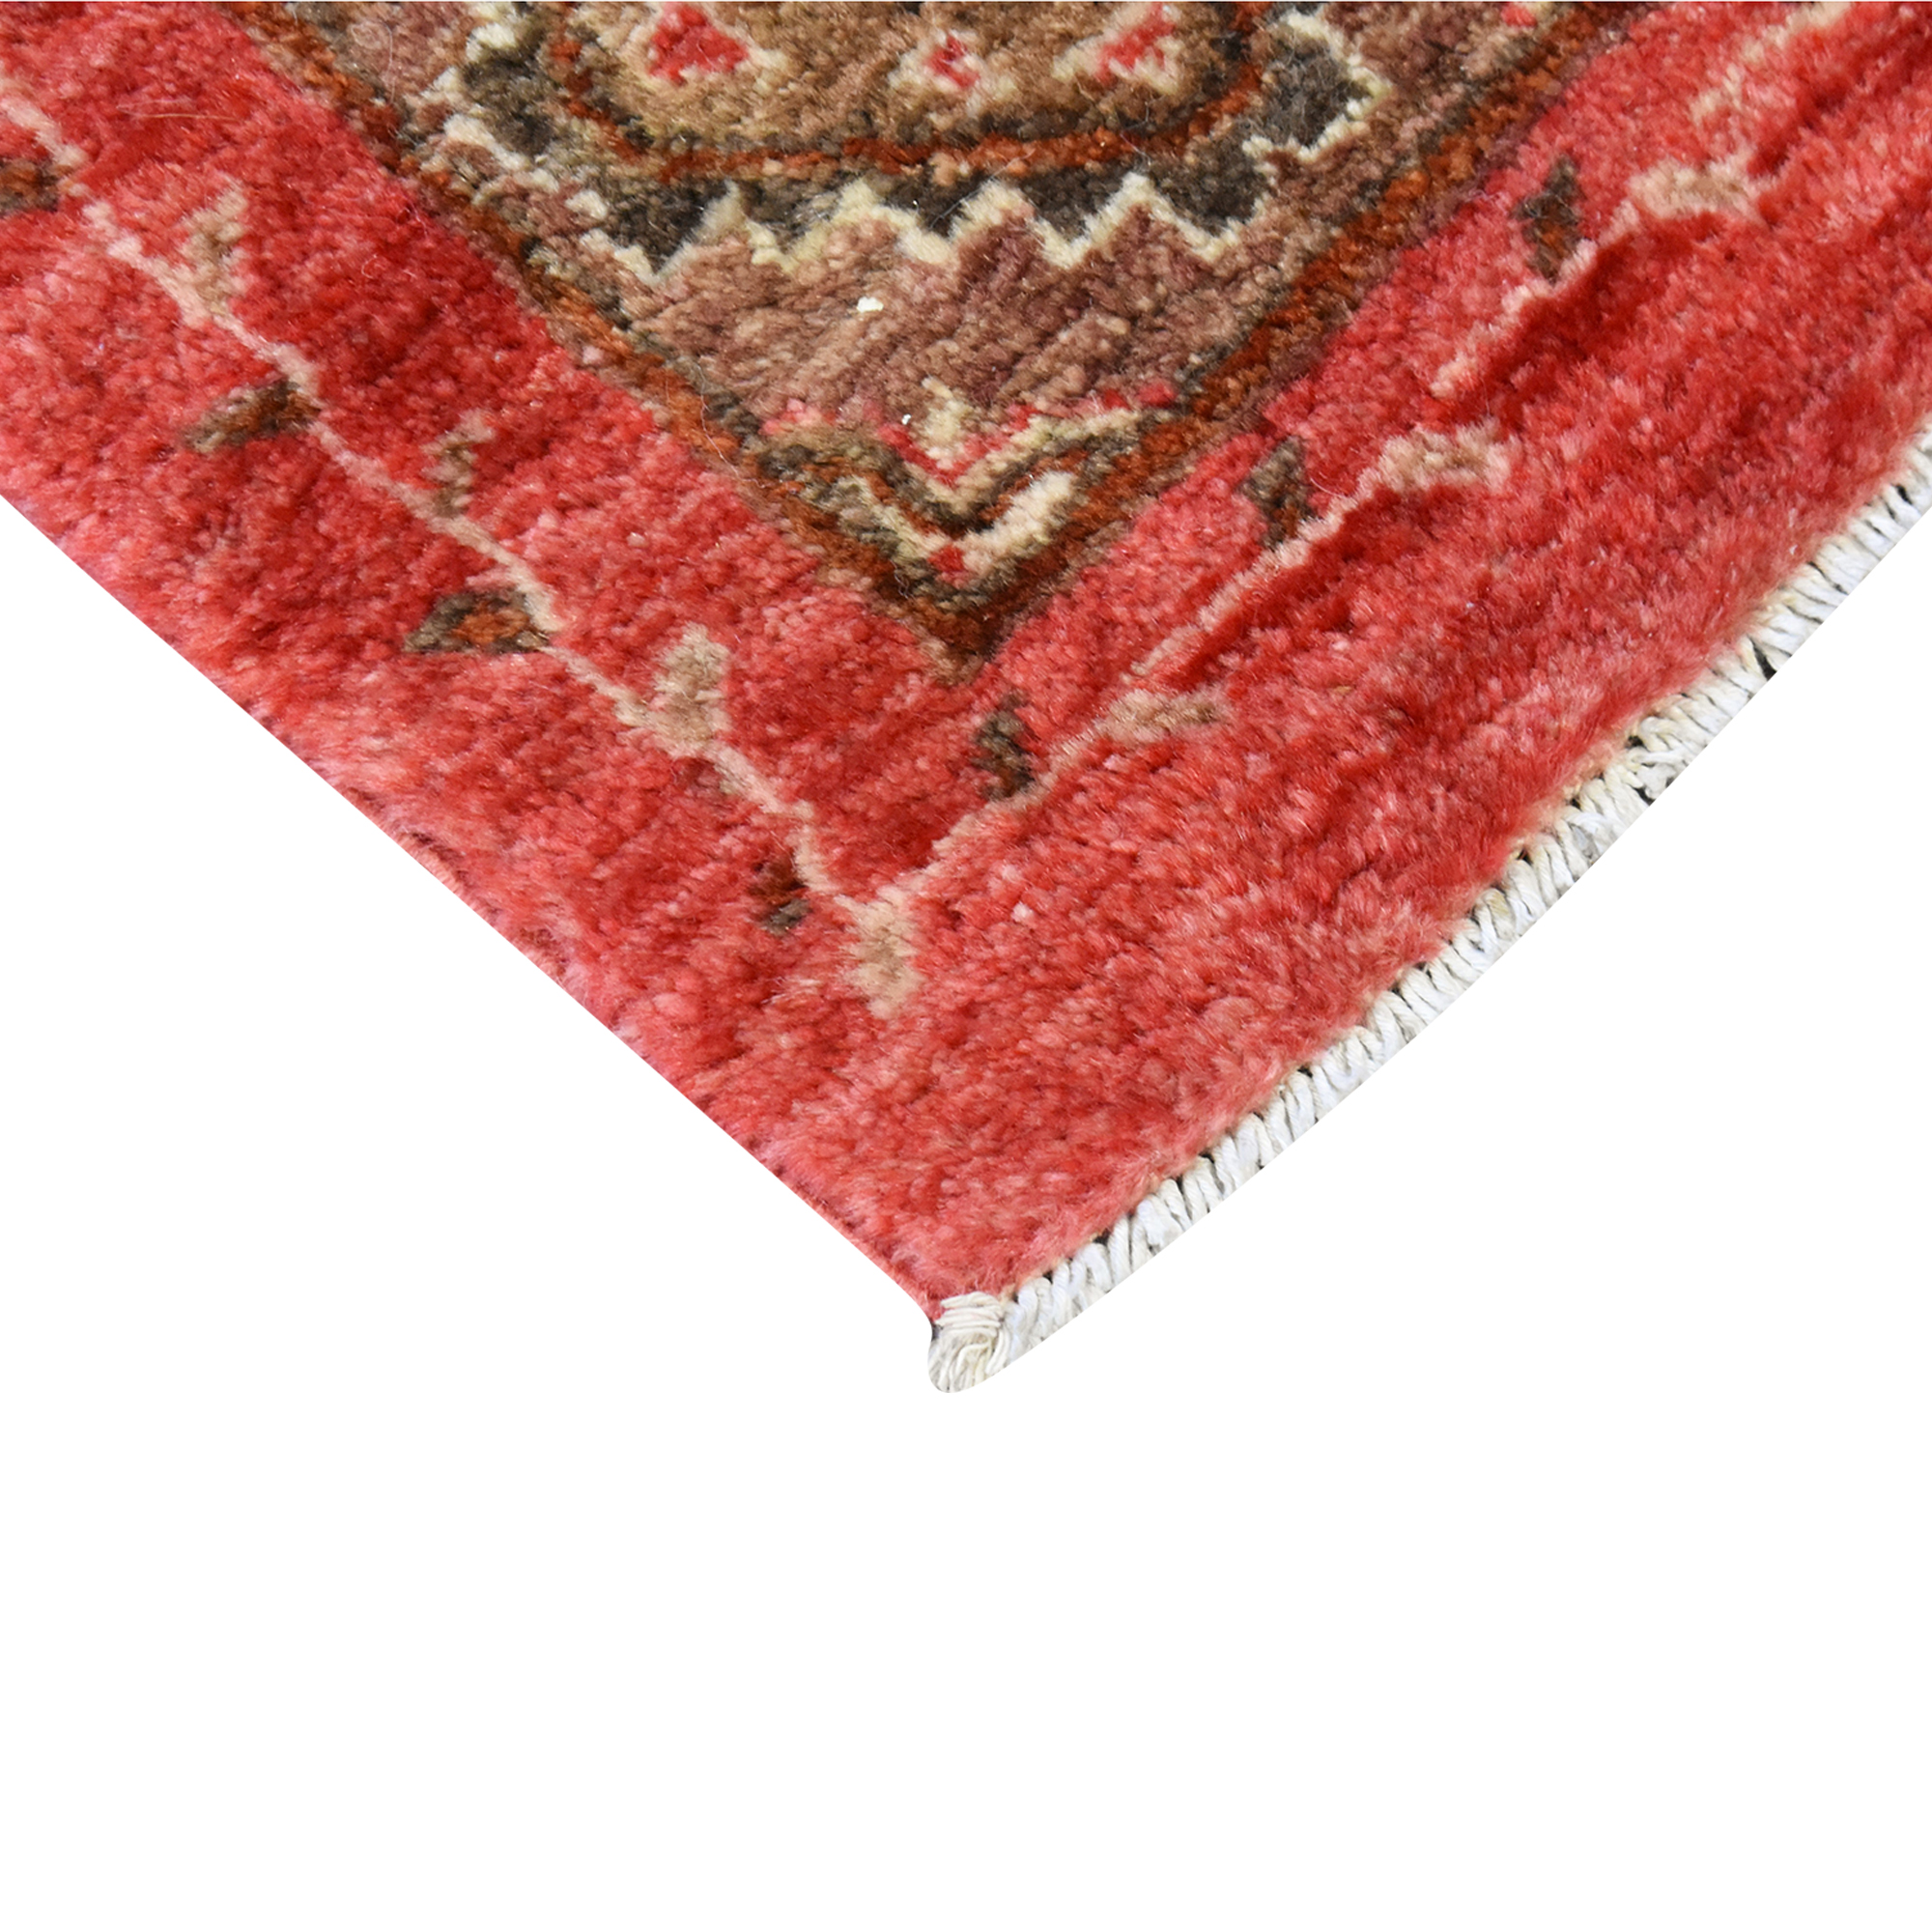 buy Couristan Couristan Patterned Area Rug online